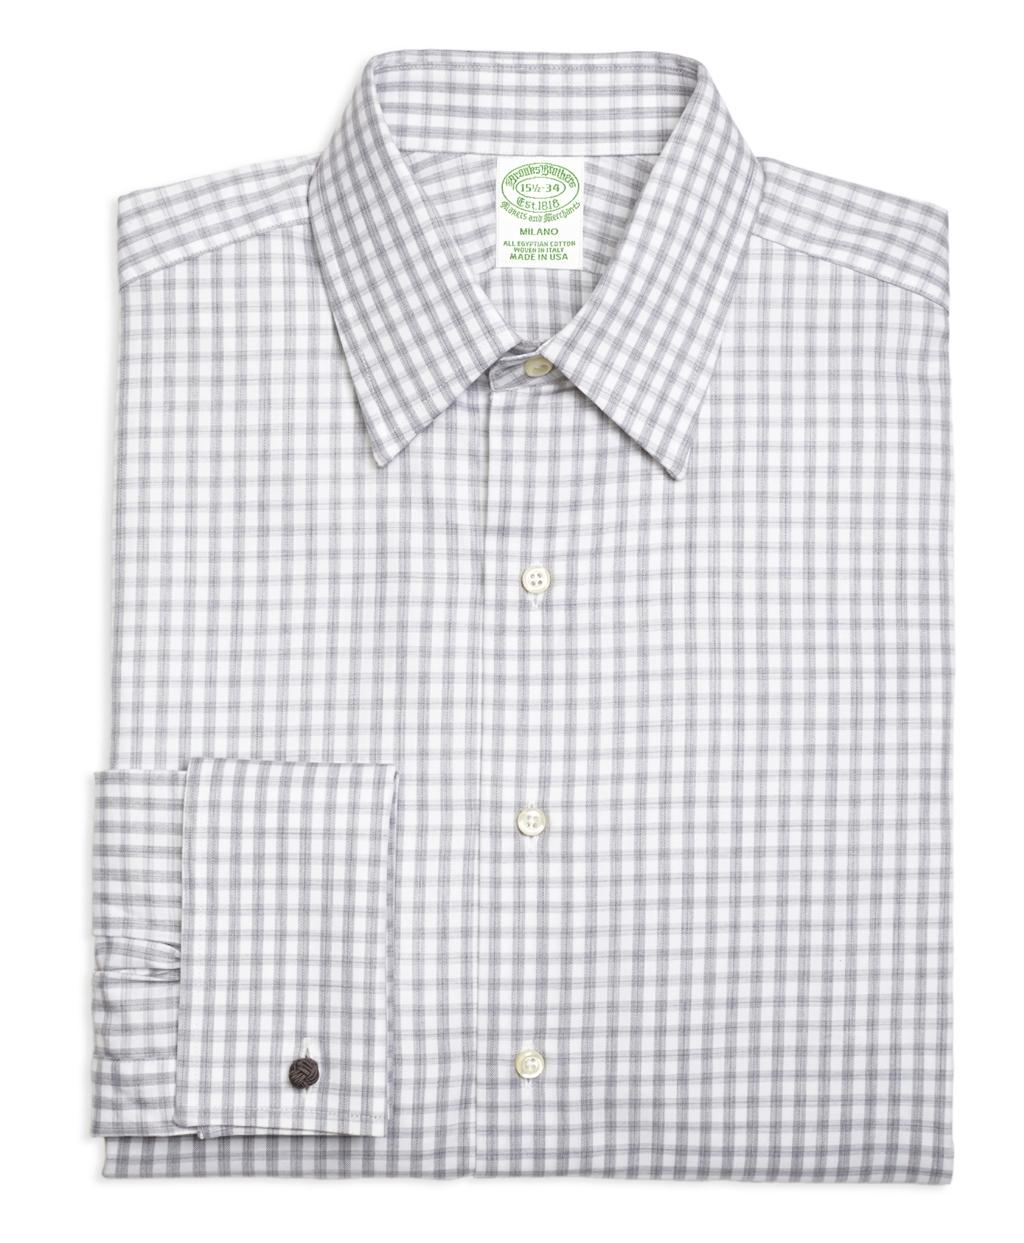 Lyst brooks brothers regent fit heathered gingham french for Gingham french cuff shirt